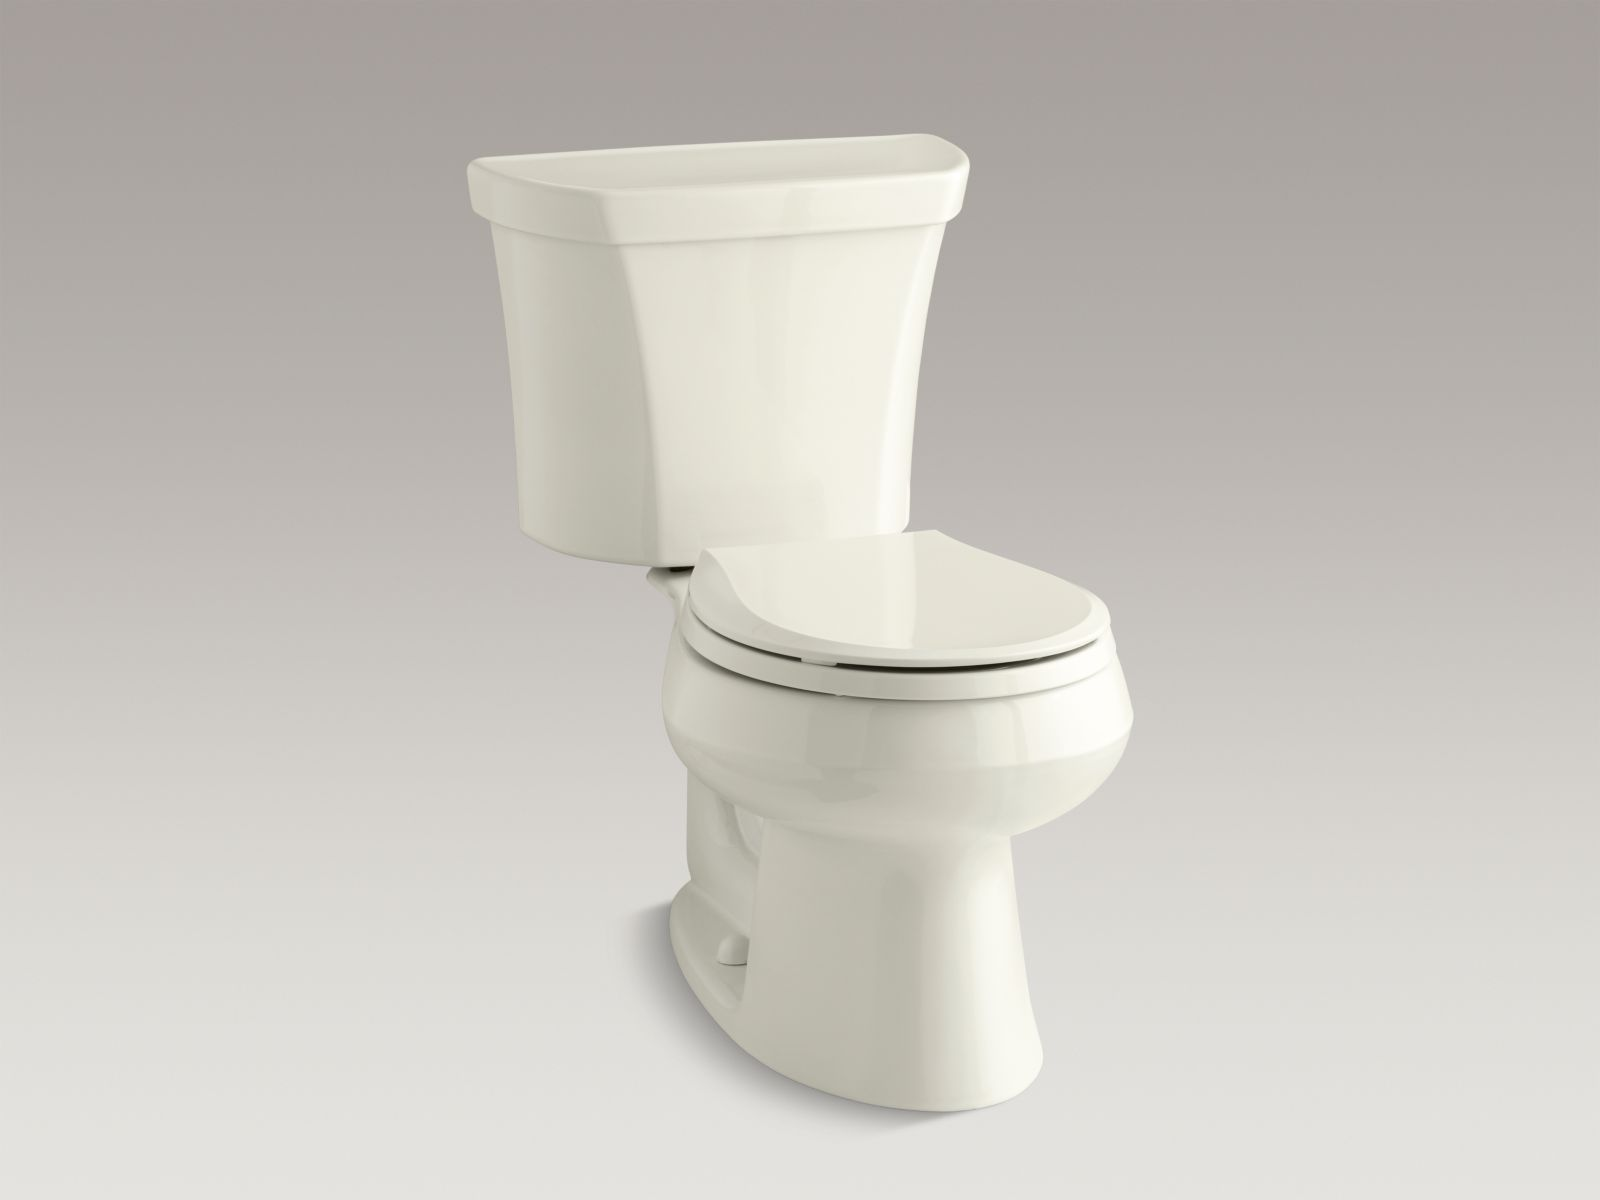 Kohler Wellworth® K-3987-RA-96 Wellworth® two-piece round-front dual-flush toilet with Class Five® flush technology and right-hand trip lever Biscuit